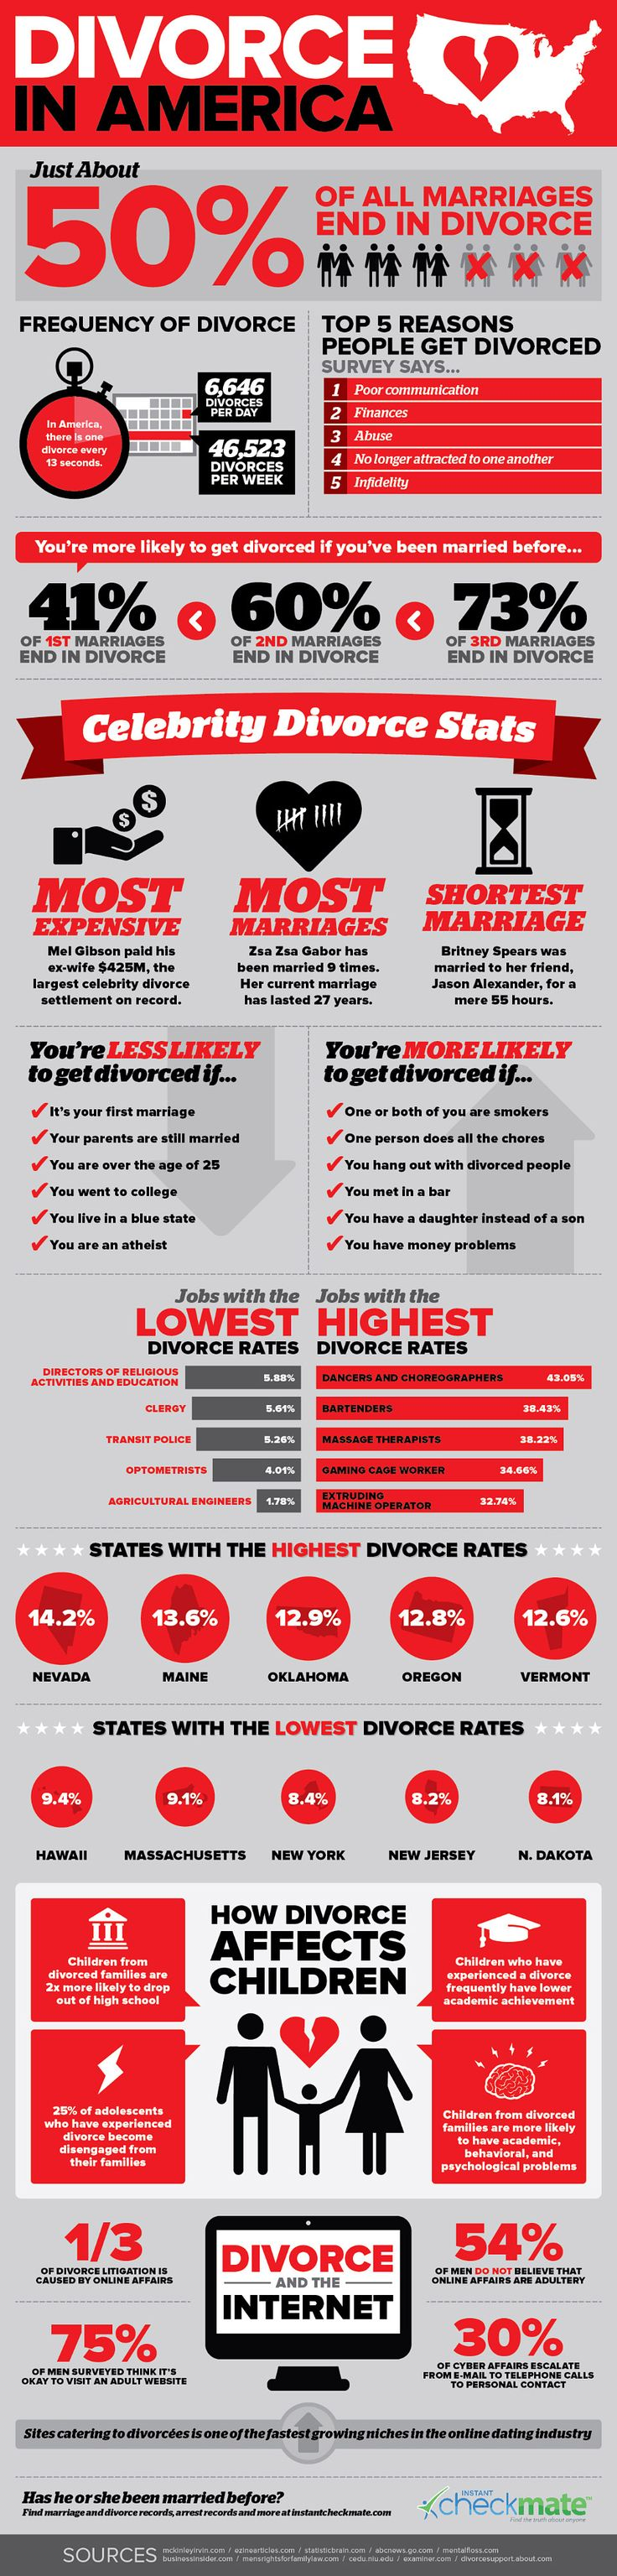 Divorce in America: An Infographic